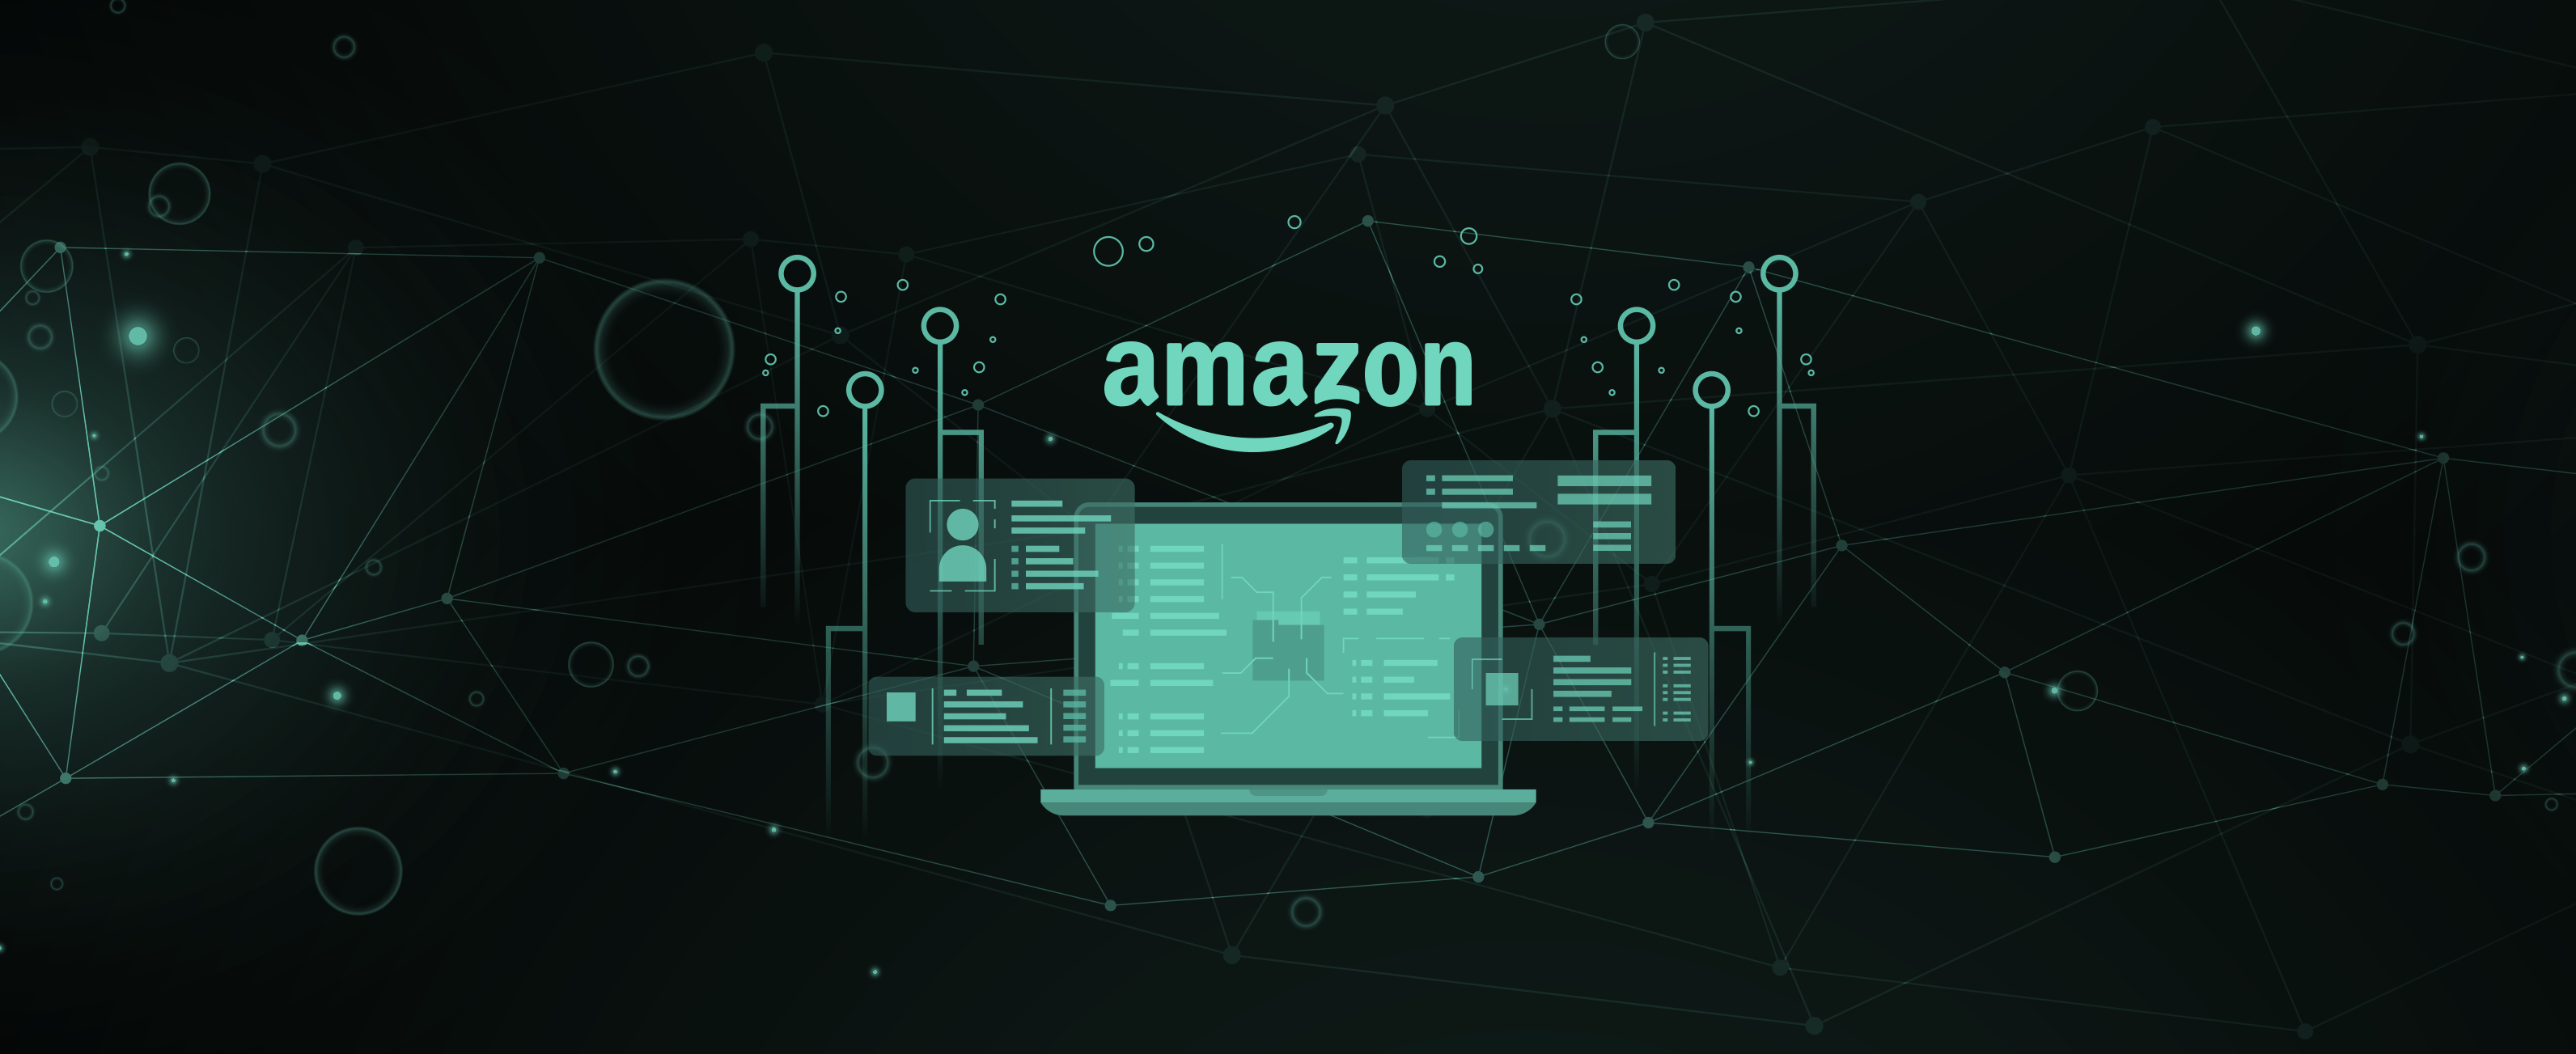 Don't Sell Out: Proven Amazon Brand Protection Tactics